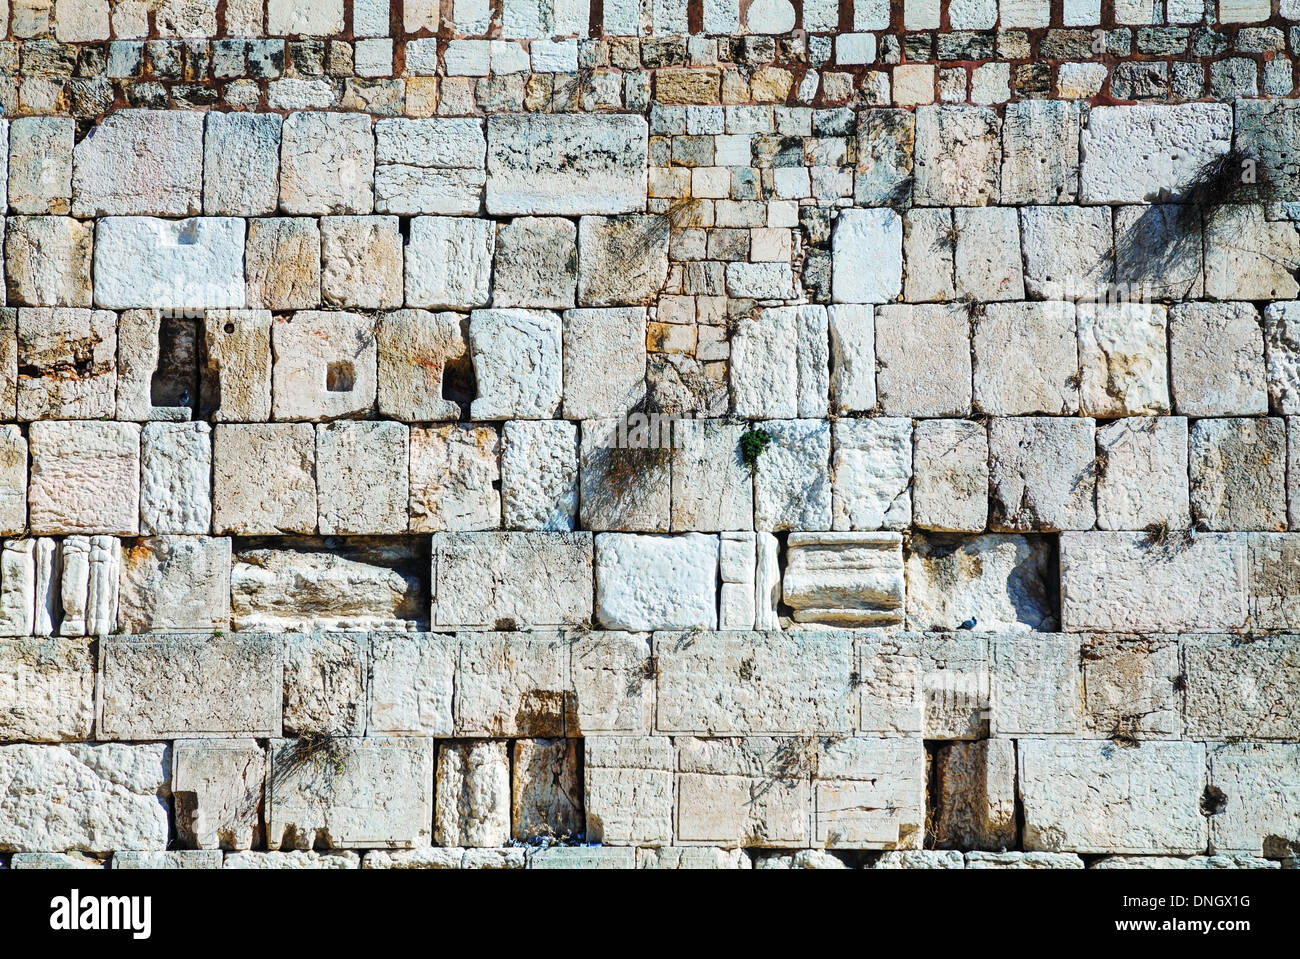 Rocks of the Wailing wall close up in Jerusalem, Israel - Stock Image